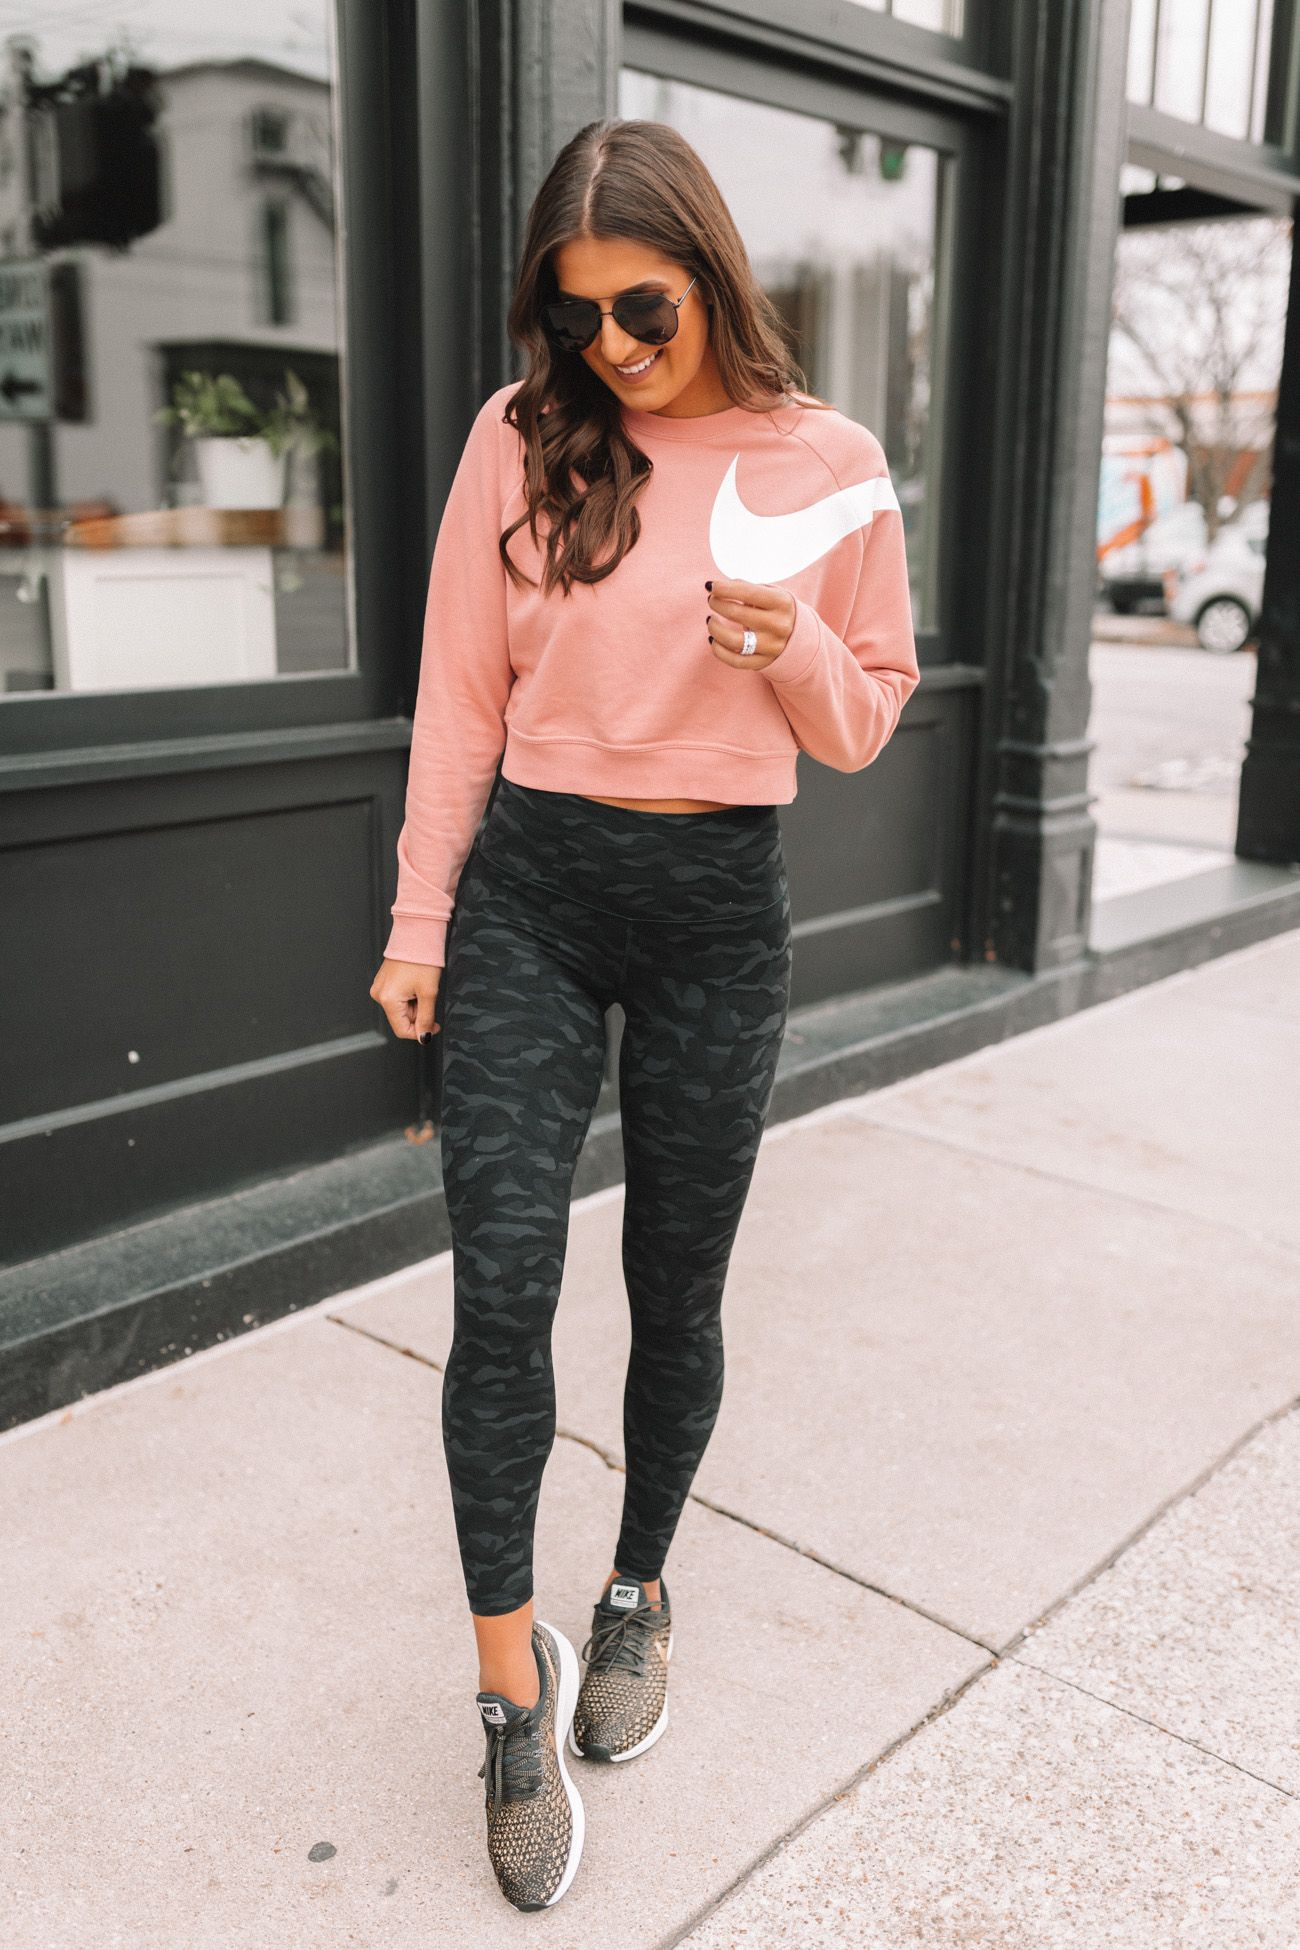 17 Best grey leggings images | Cute outfits, Fashion, Outfits